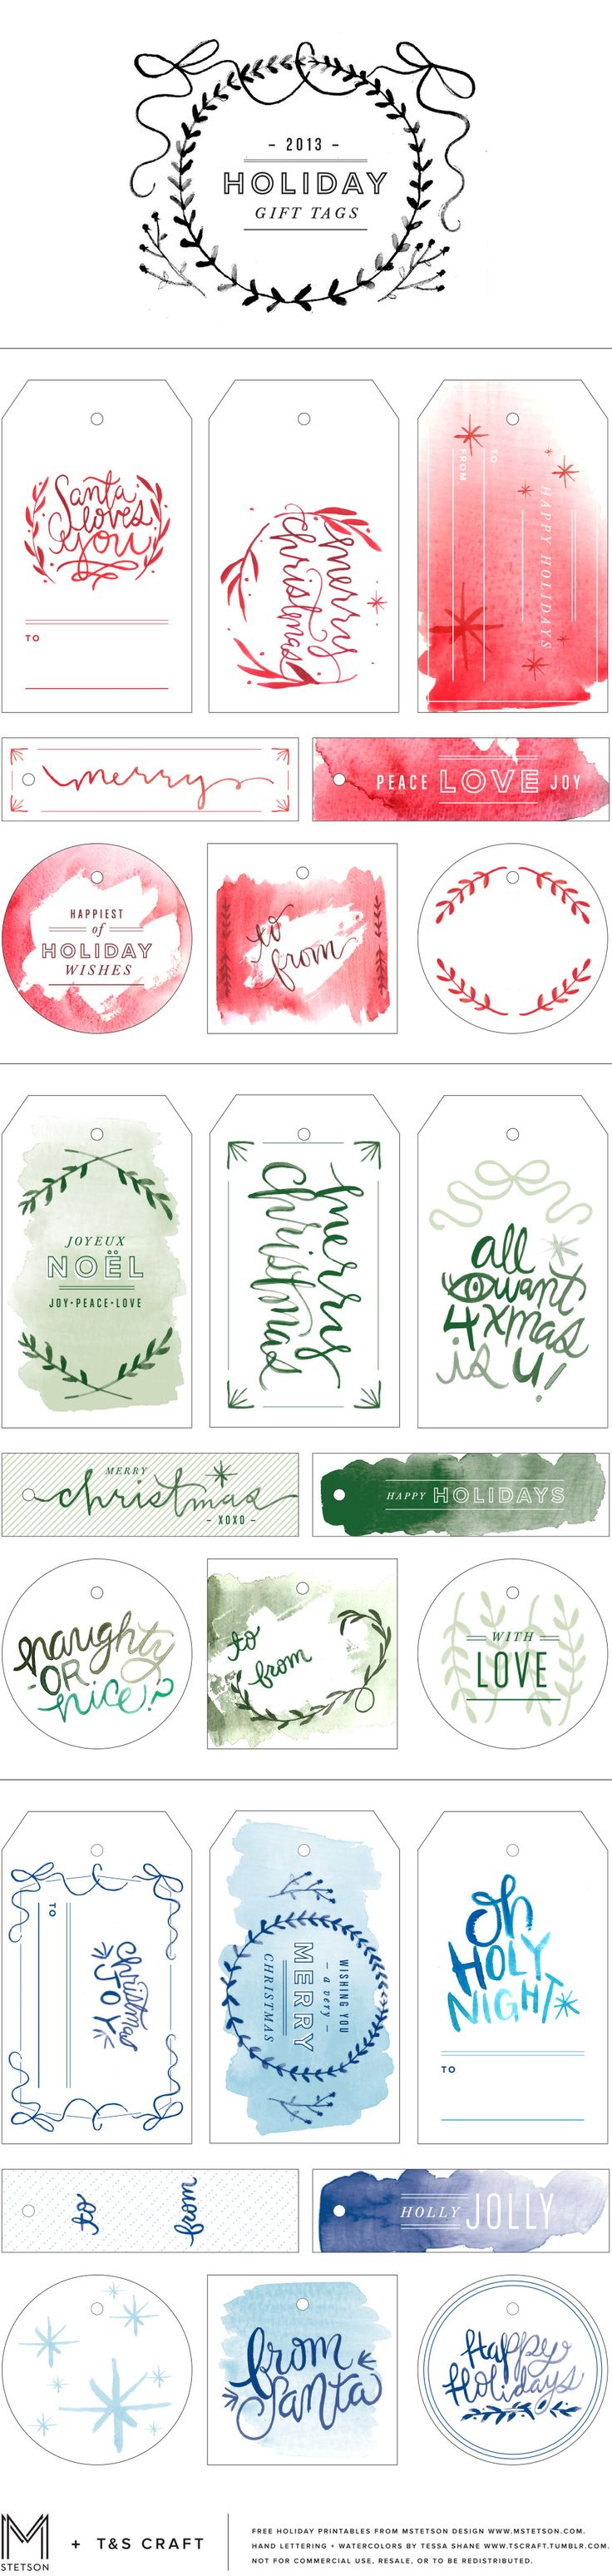 graphic regarding Free Printable Christmas Address Labels named No cost Printable Xmas Labels Template - Xmas Printables